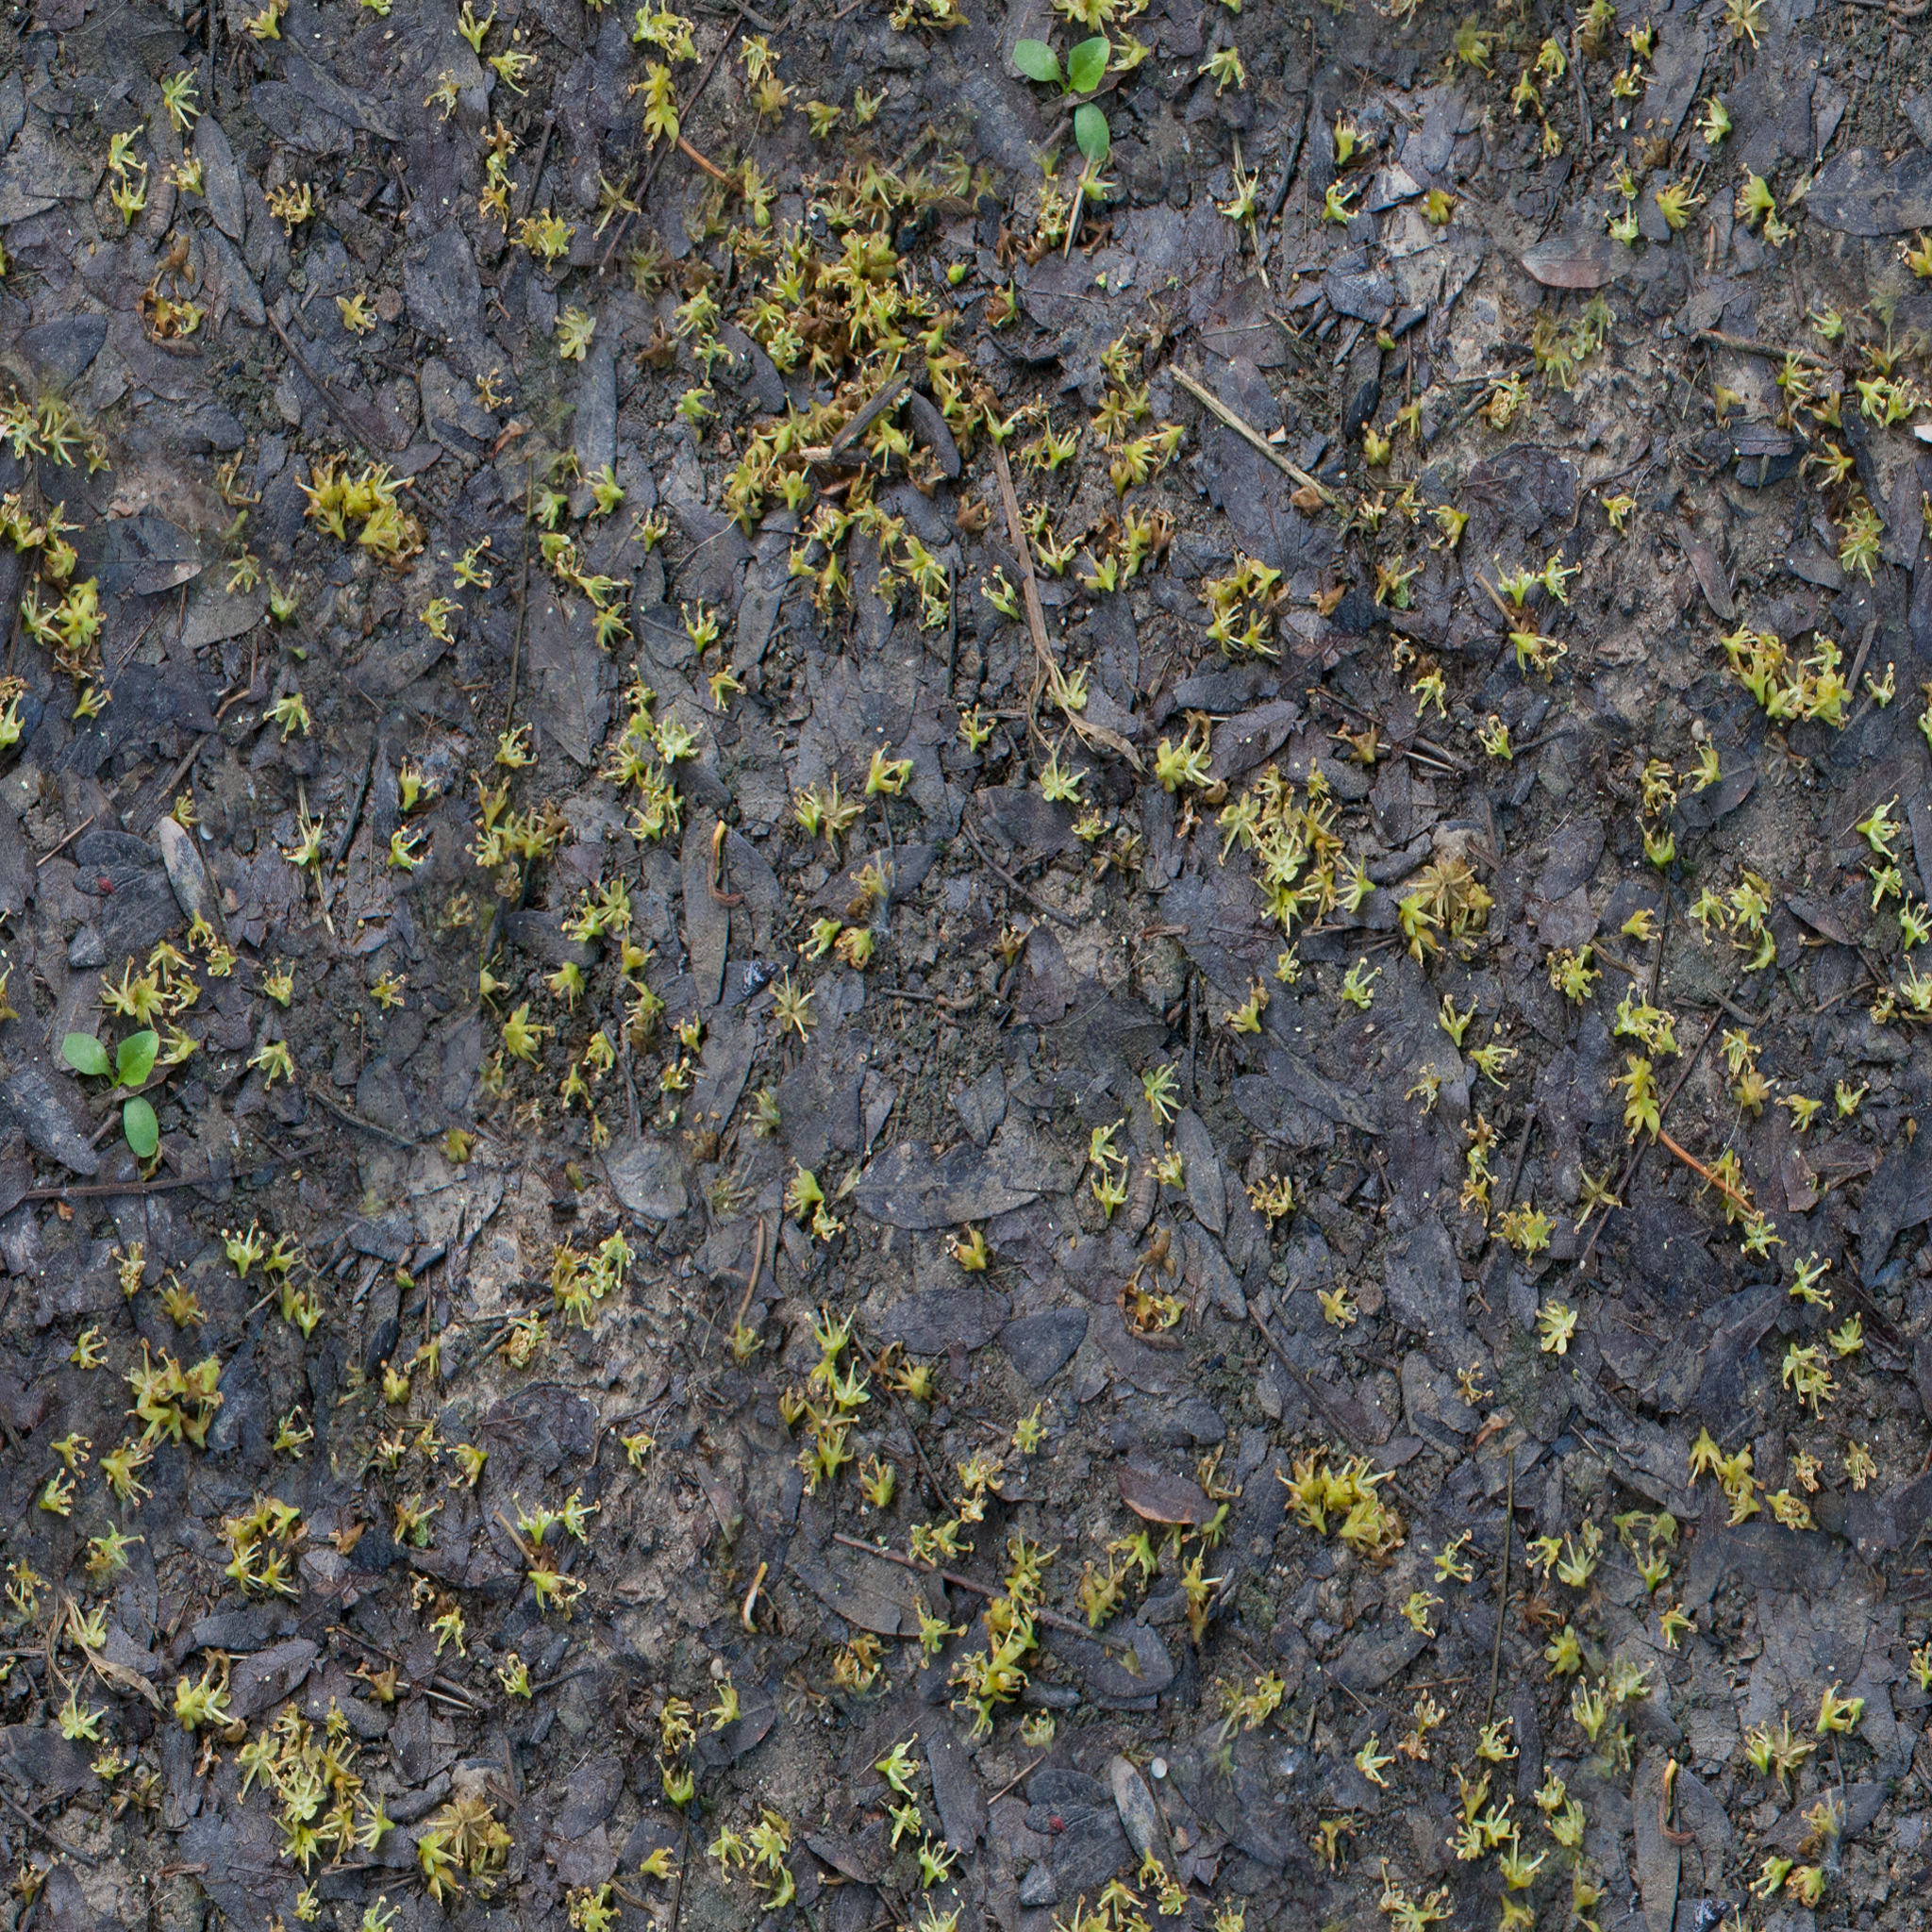 decaying-leaf-litter.jpg